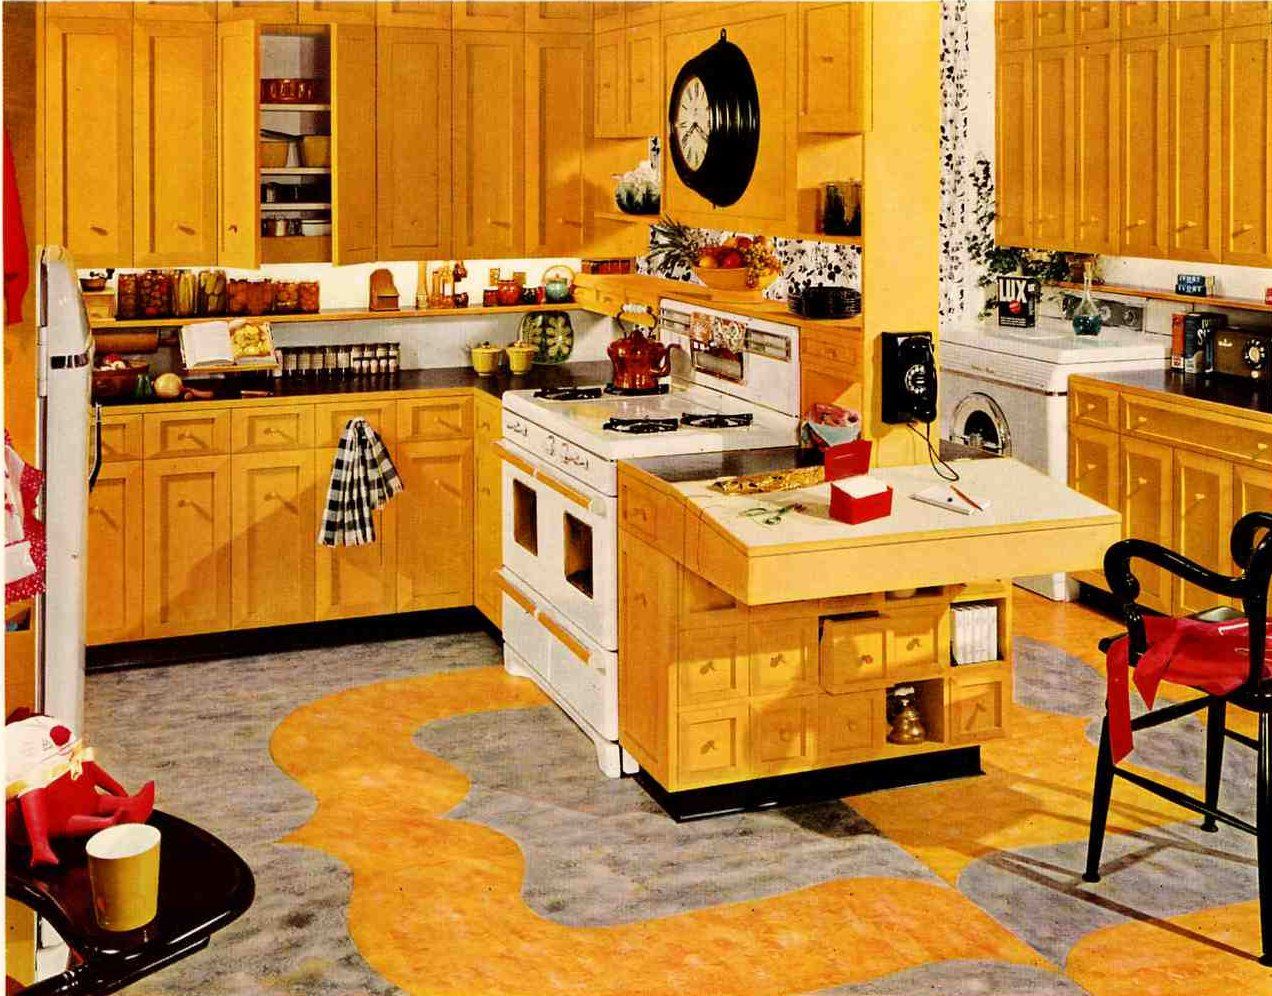 Stunning Retro Kitchen Design 1272 x 996 · 296 kB · jpeg